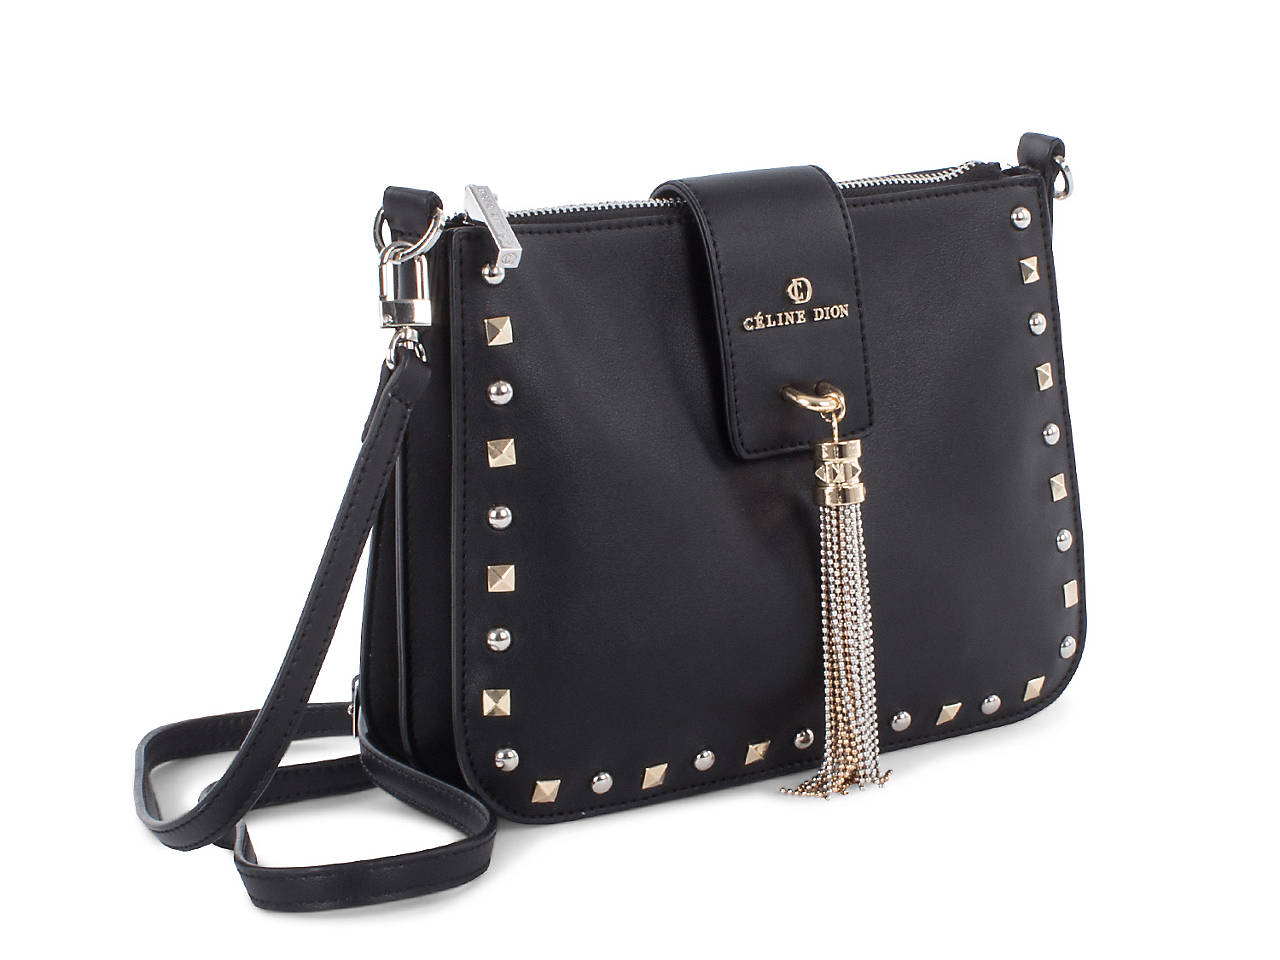 9ca5937ac22f Celine Dion Cadenza Crossbody Bag Women s Handbags   Accessories